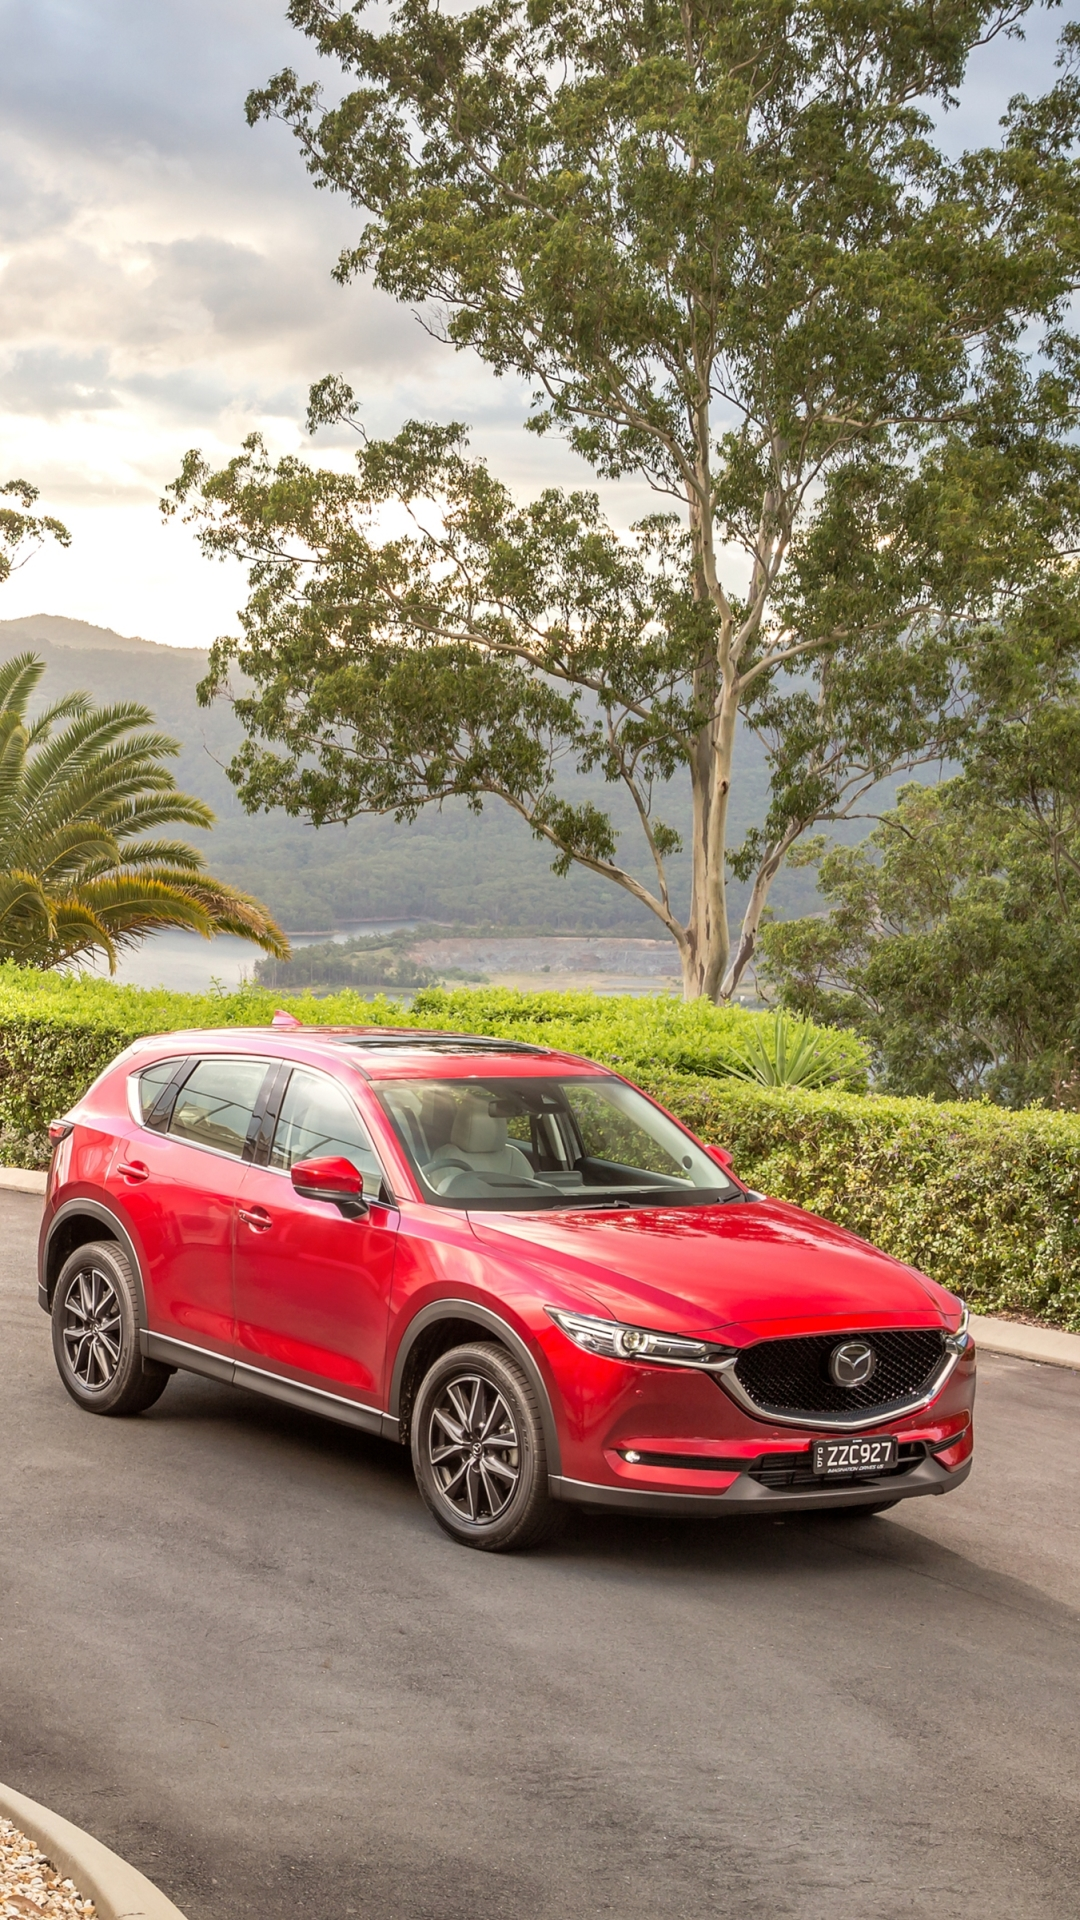 Vehicles Mazda Cx 5 1080x19 Wallpaper Id Mobile Abyss